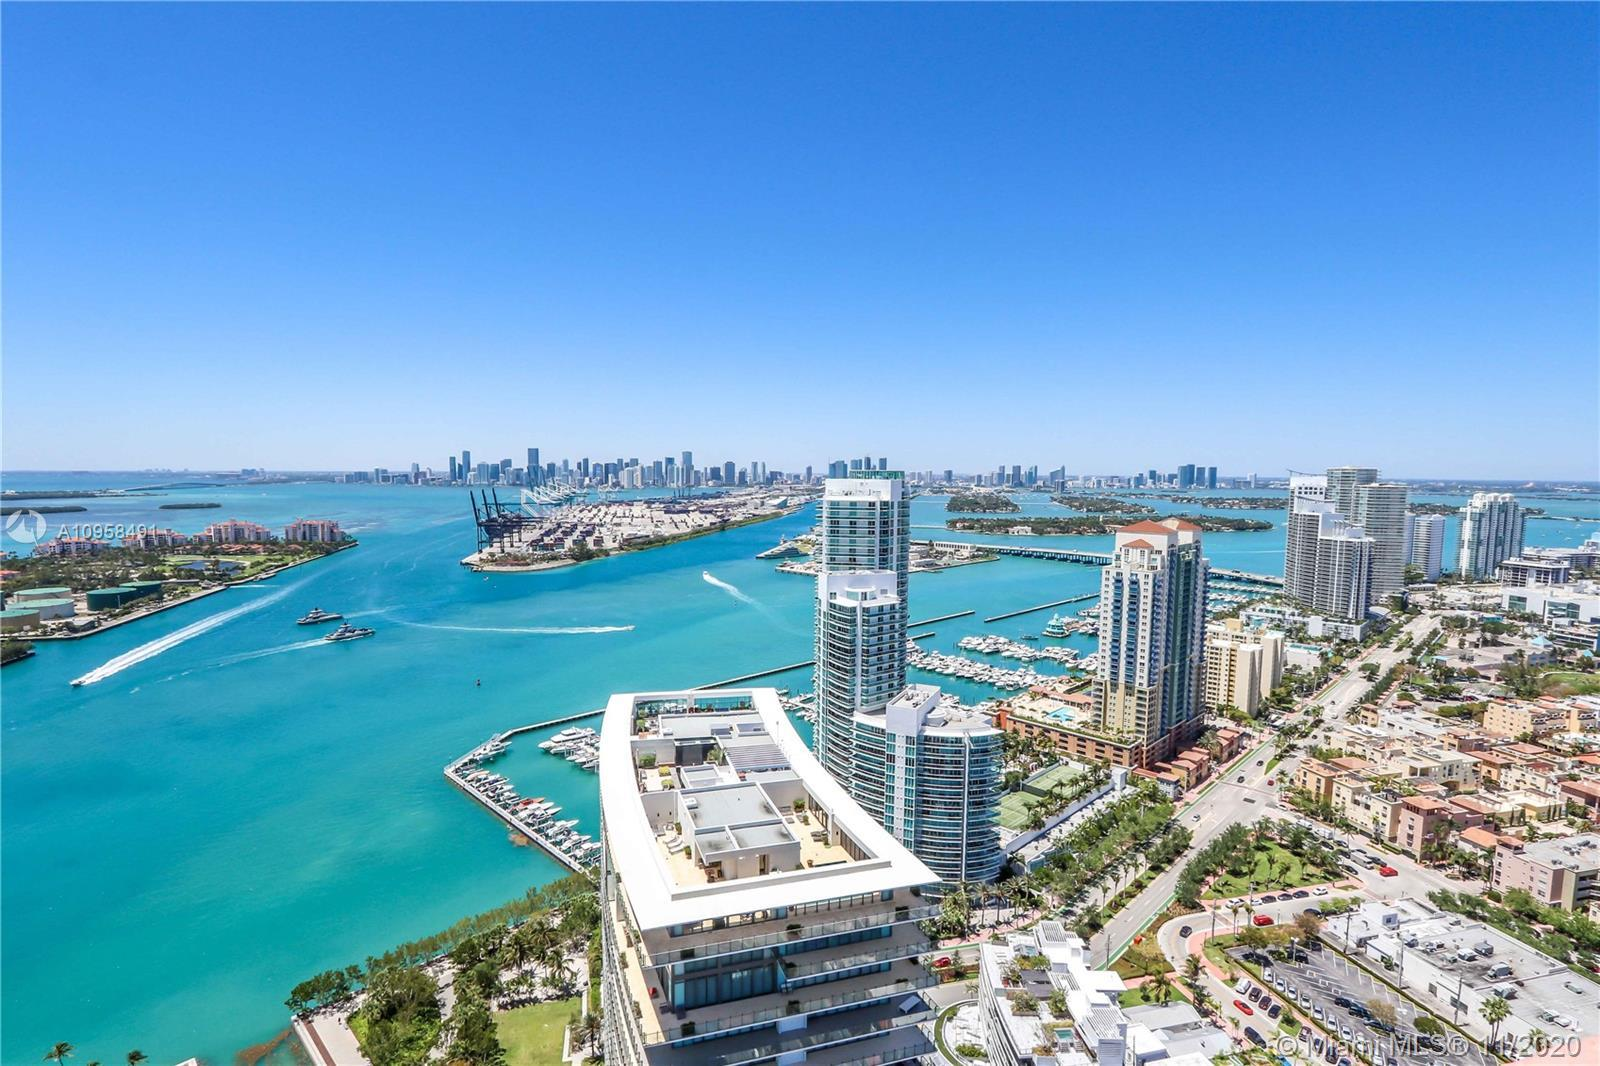 Stunning 270 degree ocean, intracoastal & downtown views from this extra spacious 2,550 square foot